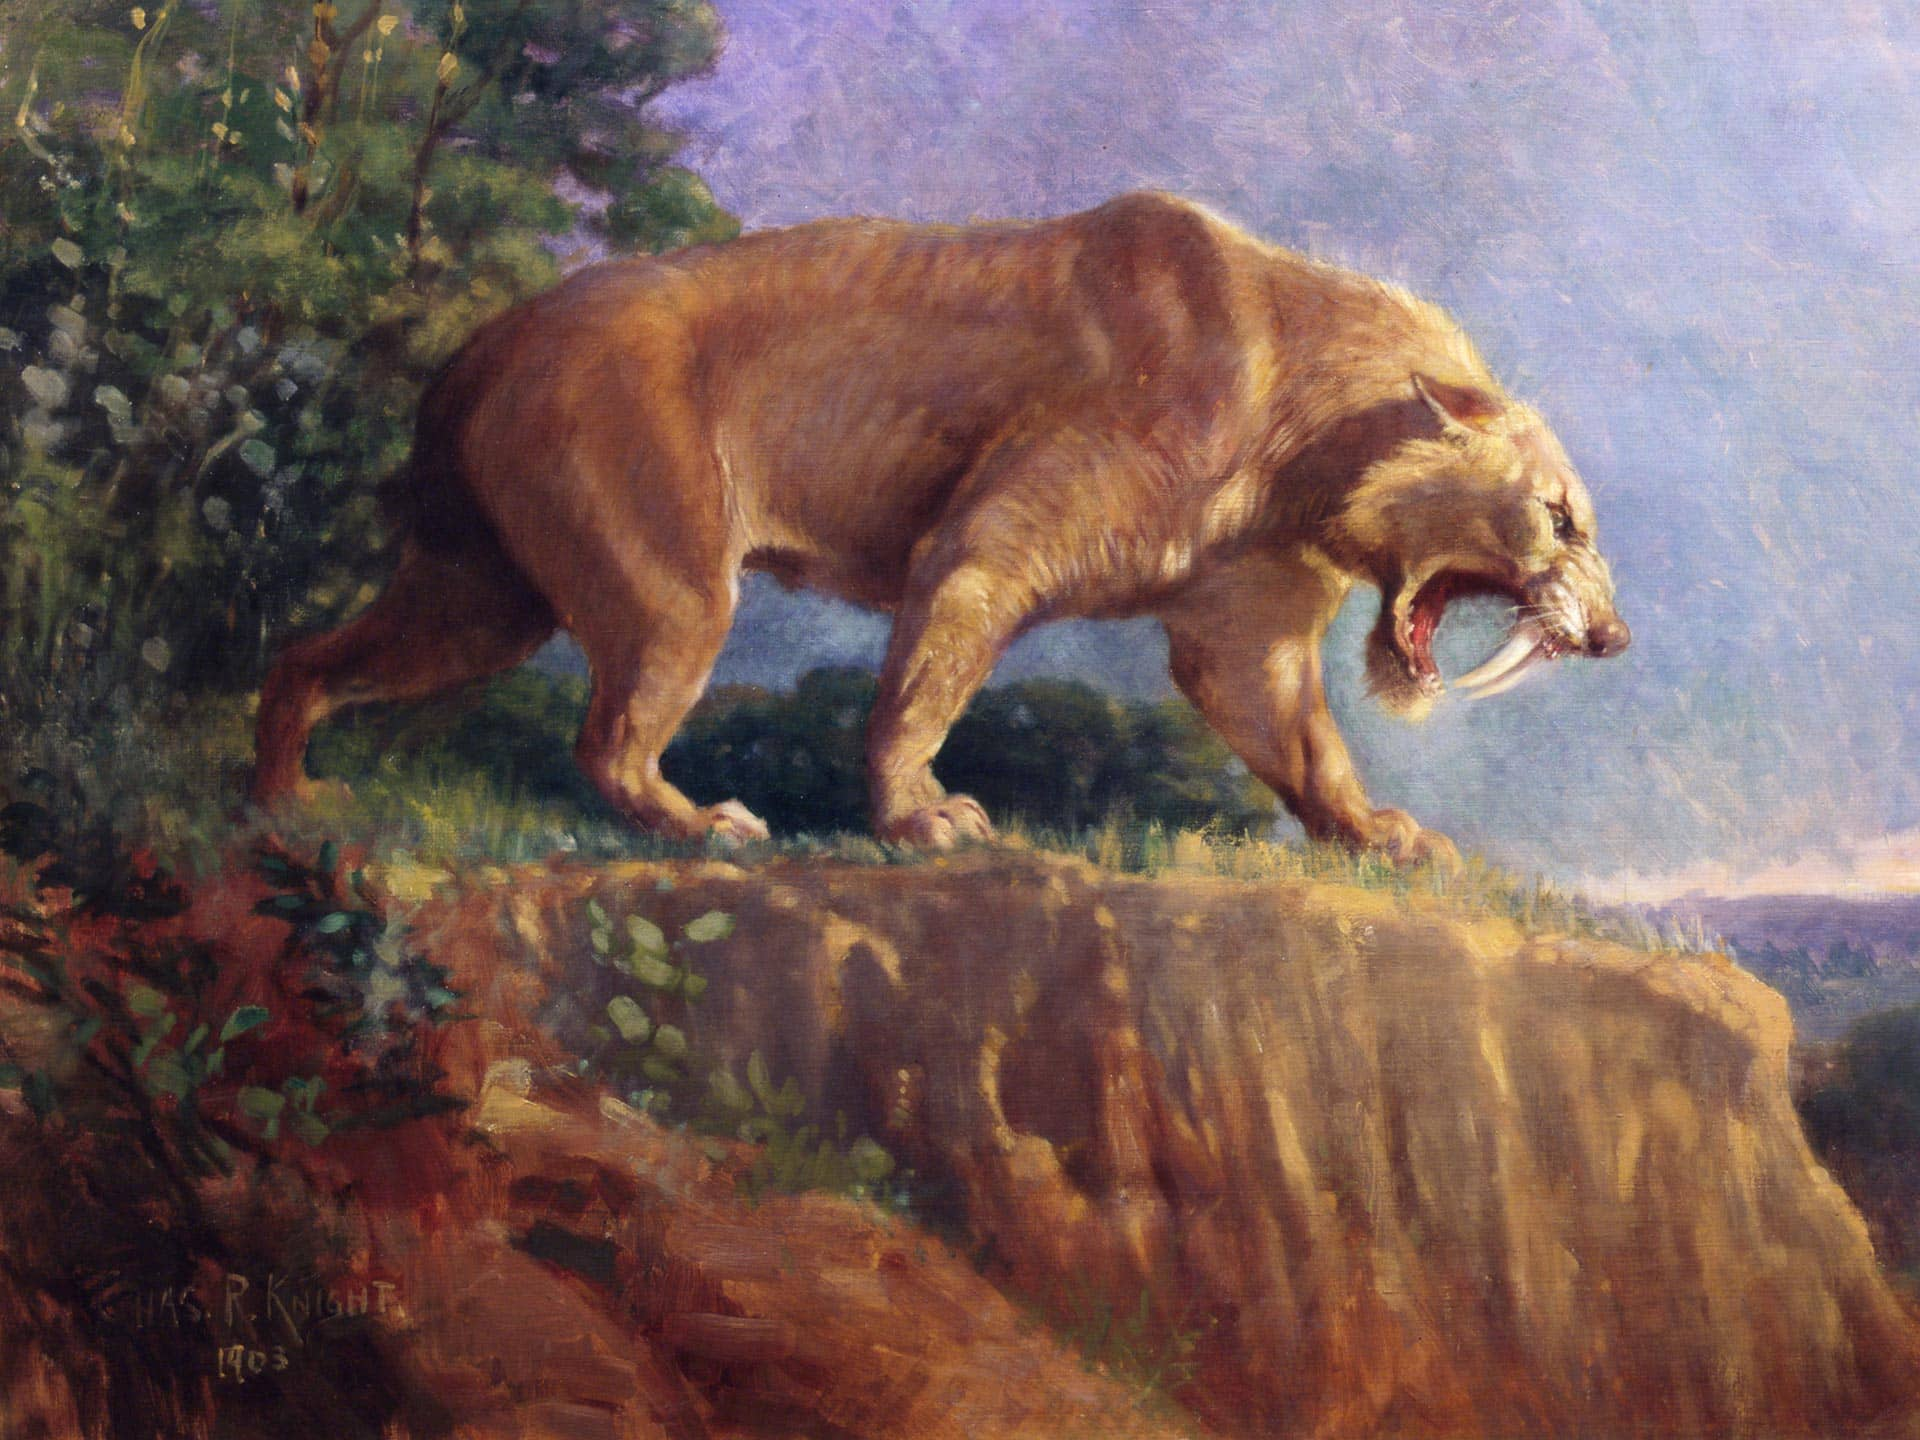 extinct saber-tooth cat (Smilodon)